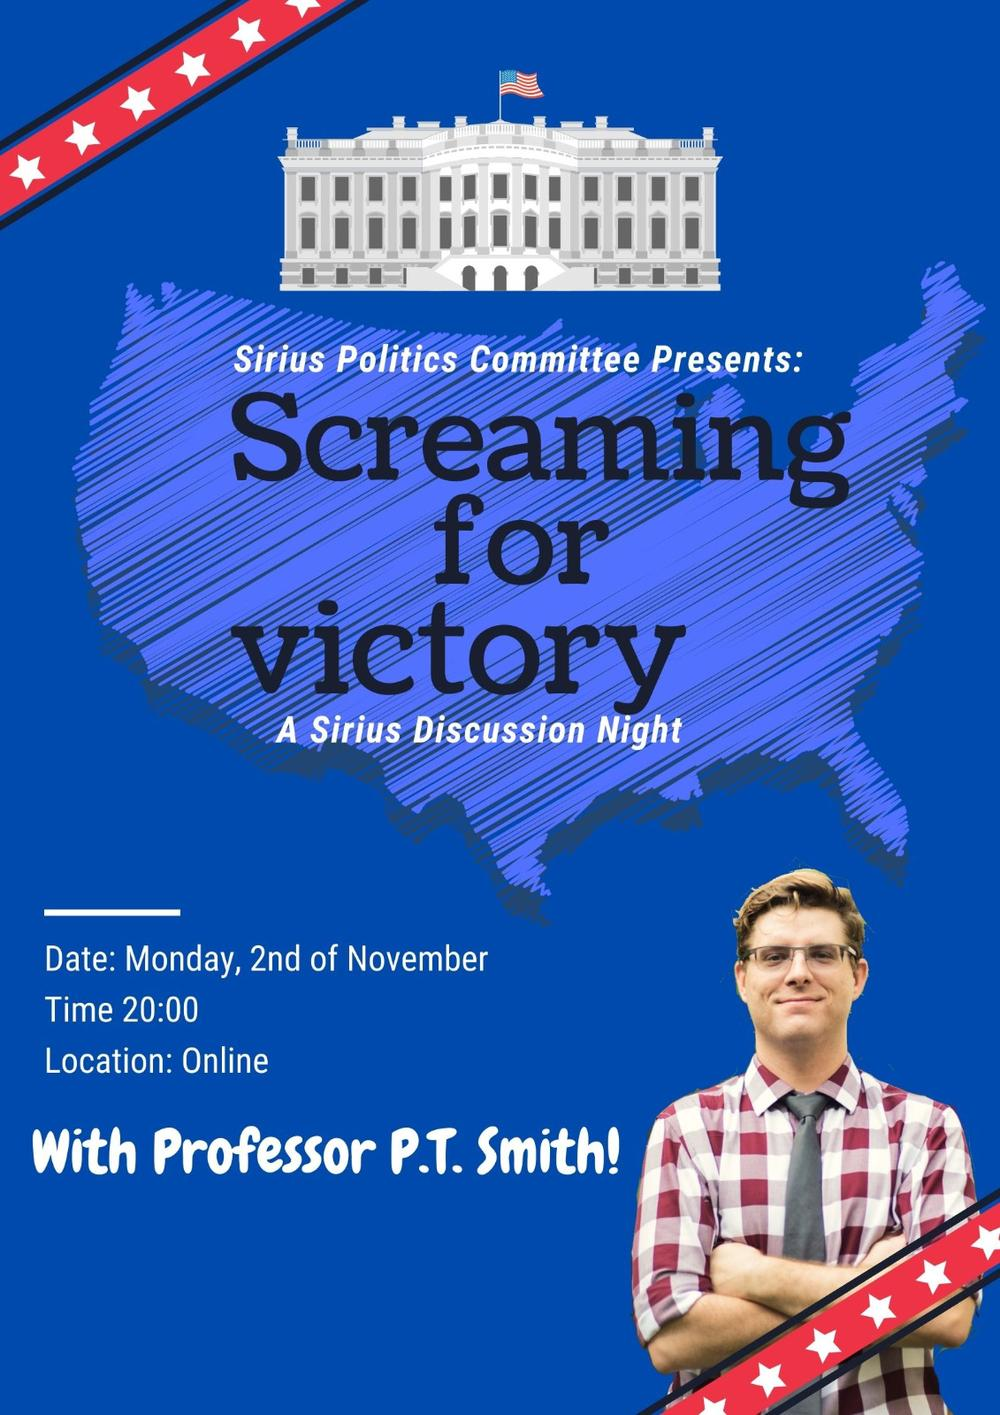 Screaming for victory: a Sirius discussion night